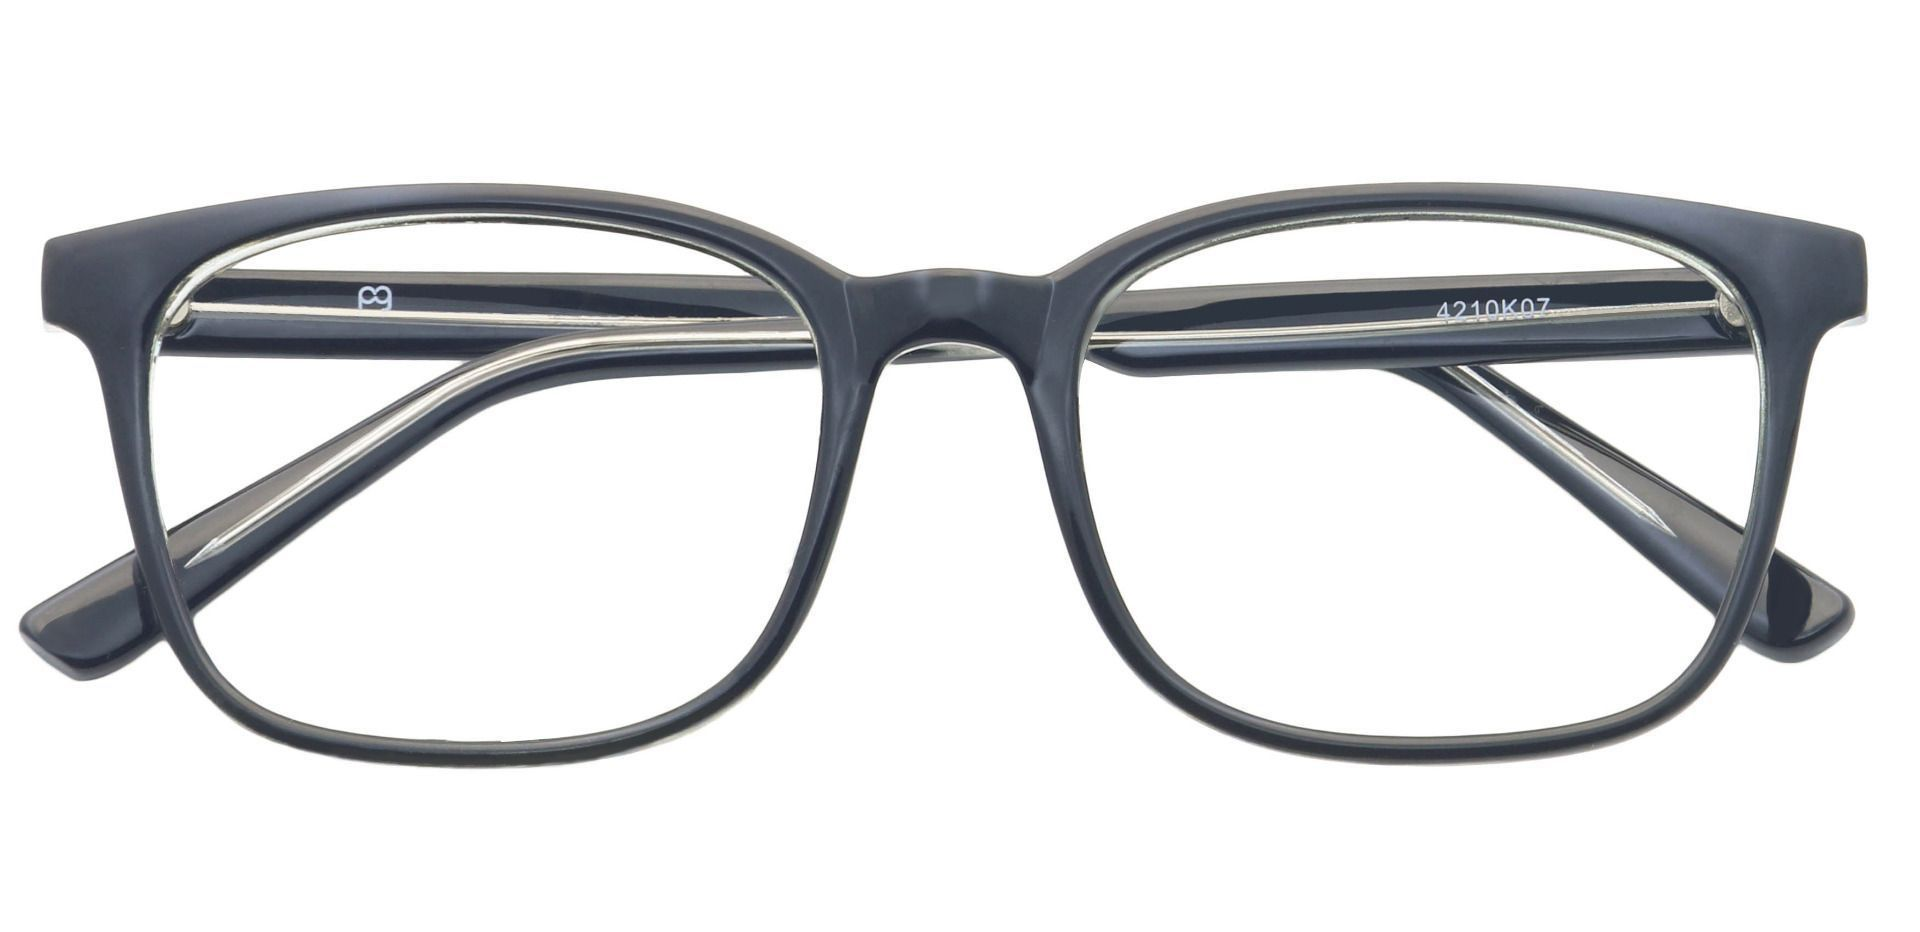 Windsor Rectangle Reading Glasses - Shiny Black/crystal